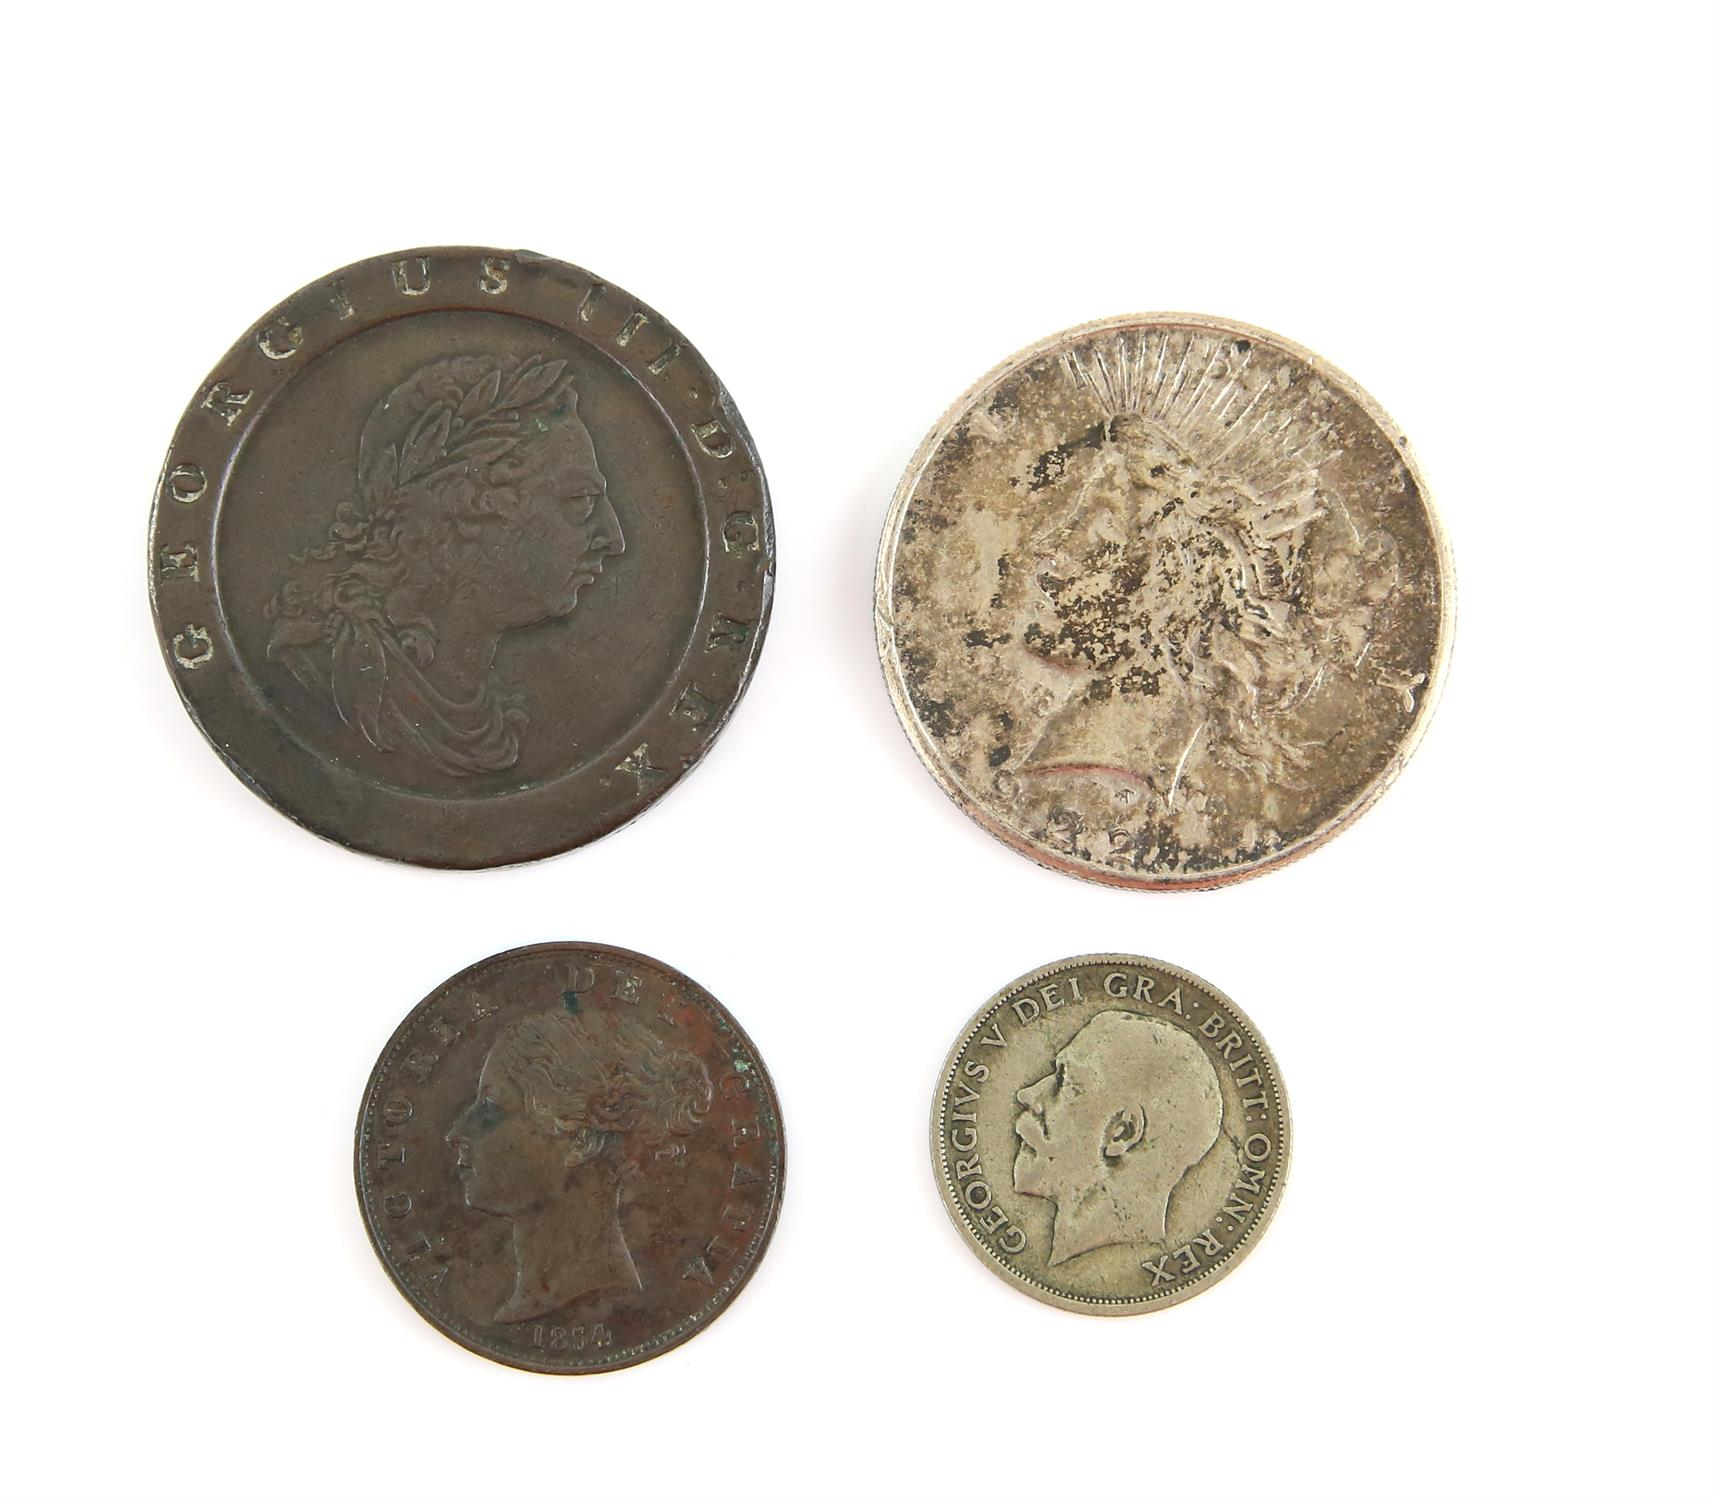 Four coins including a British cartwheel twopence 1797, a Victoria halfpenny 1854 near very fine,